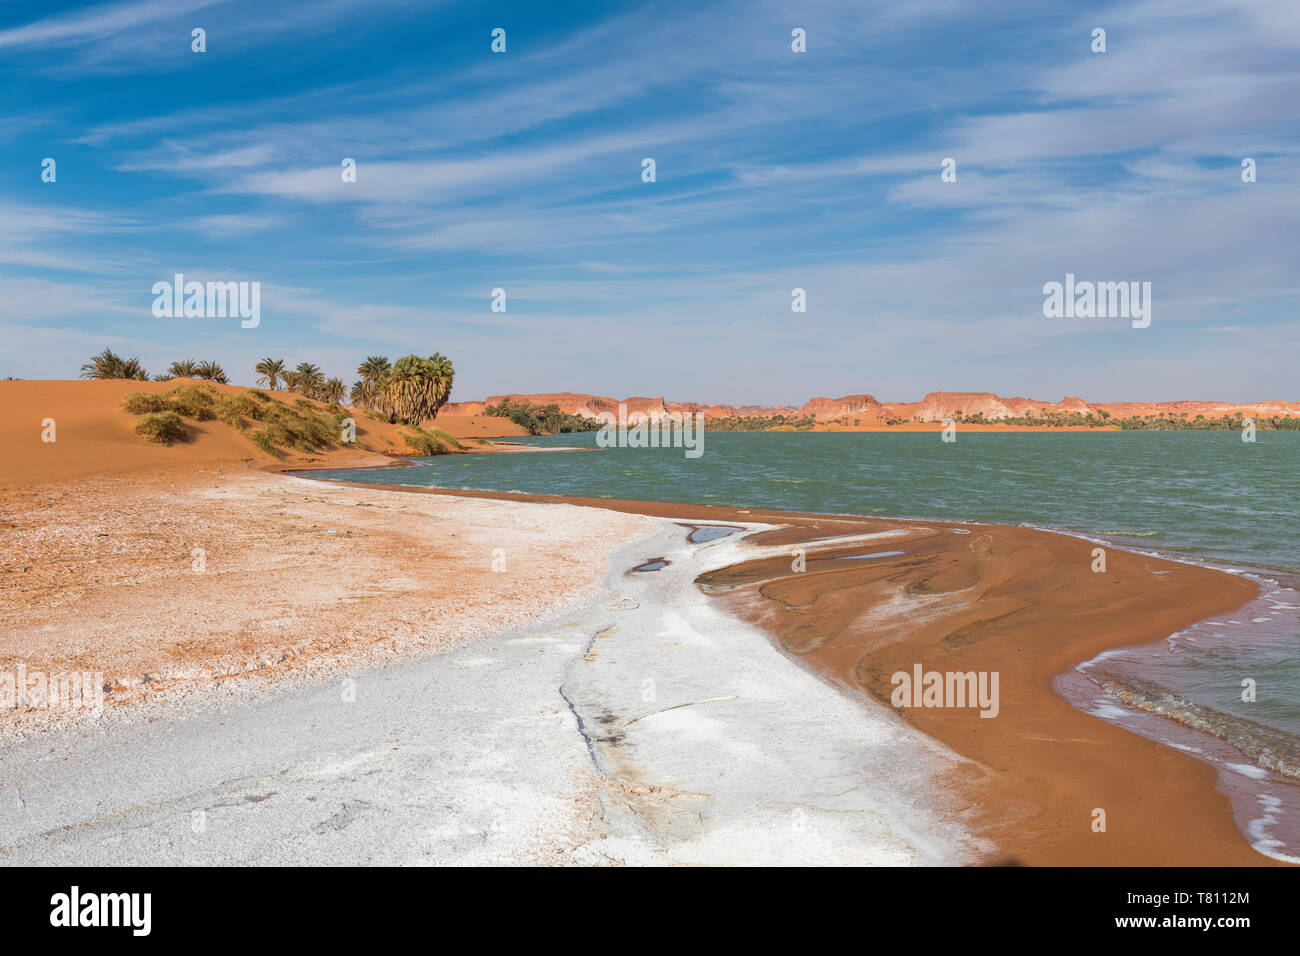 Salt crust at the shores of Ounianga Kebir part of the Ounianga lakes, UNESCO World Heritage Site, northern Chad, Africa - Stock Image